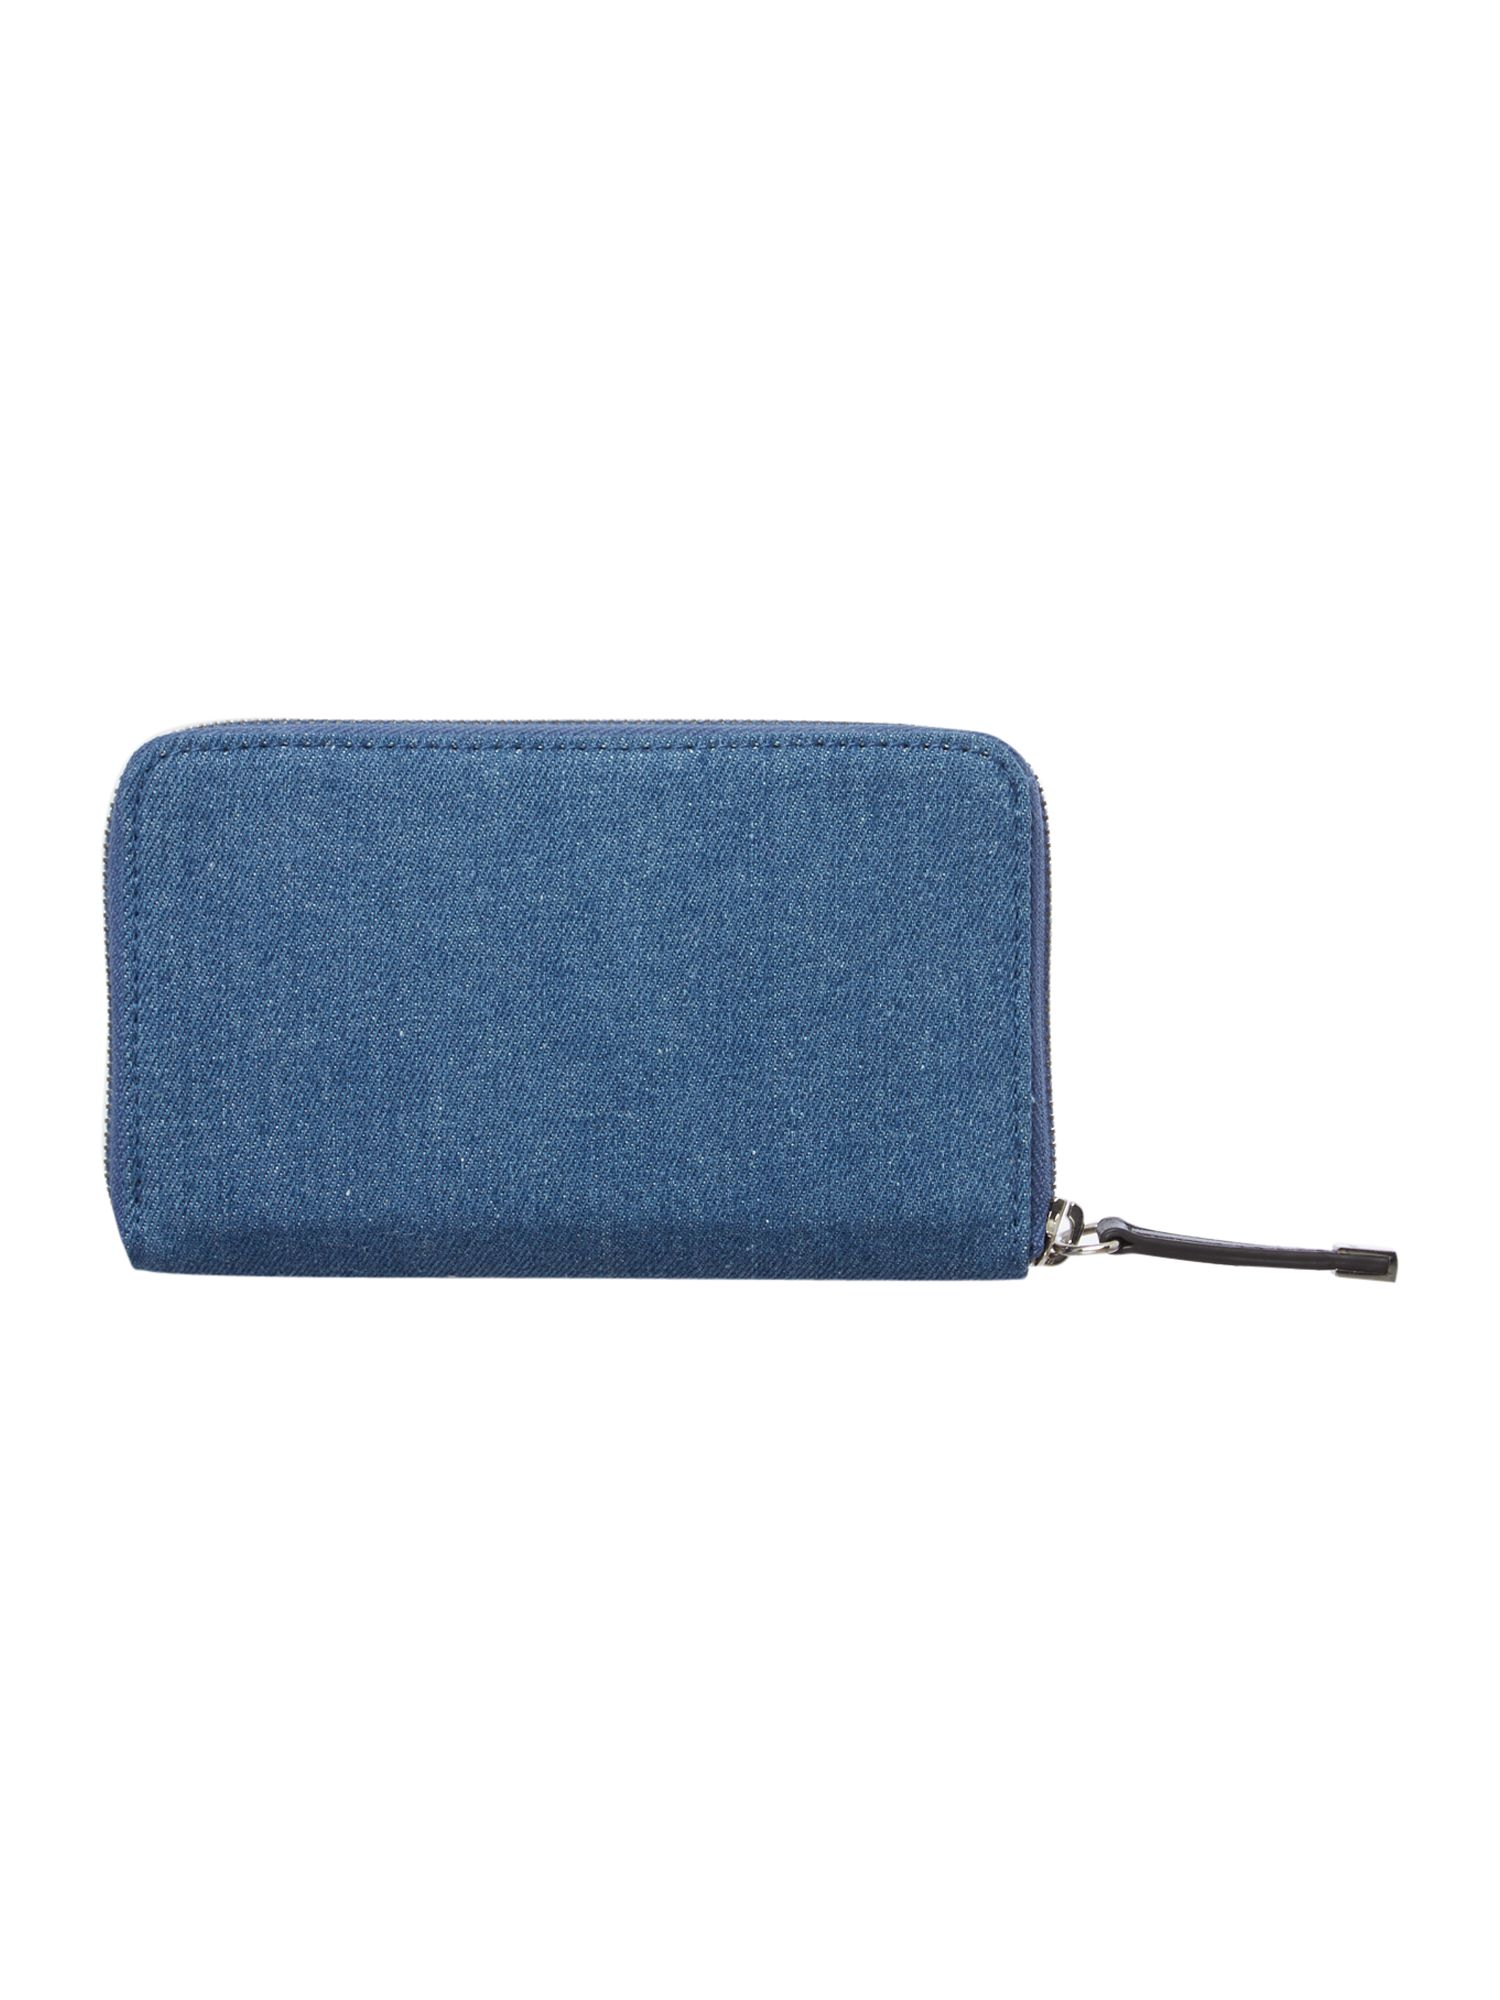 Denim blue medium zip around purse